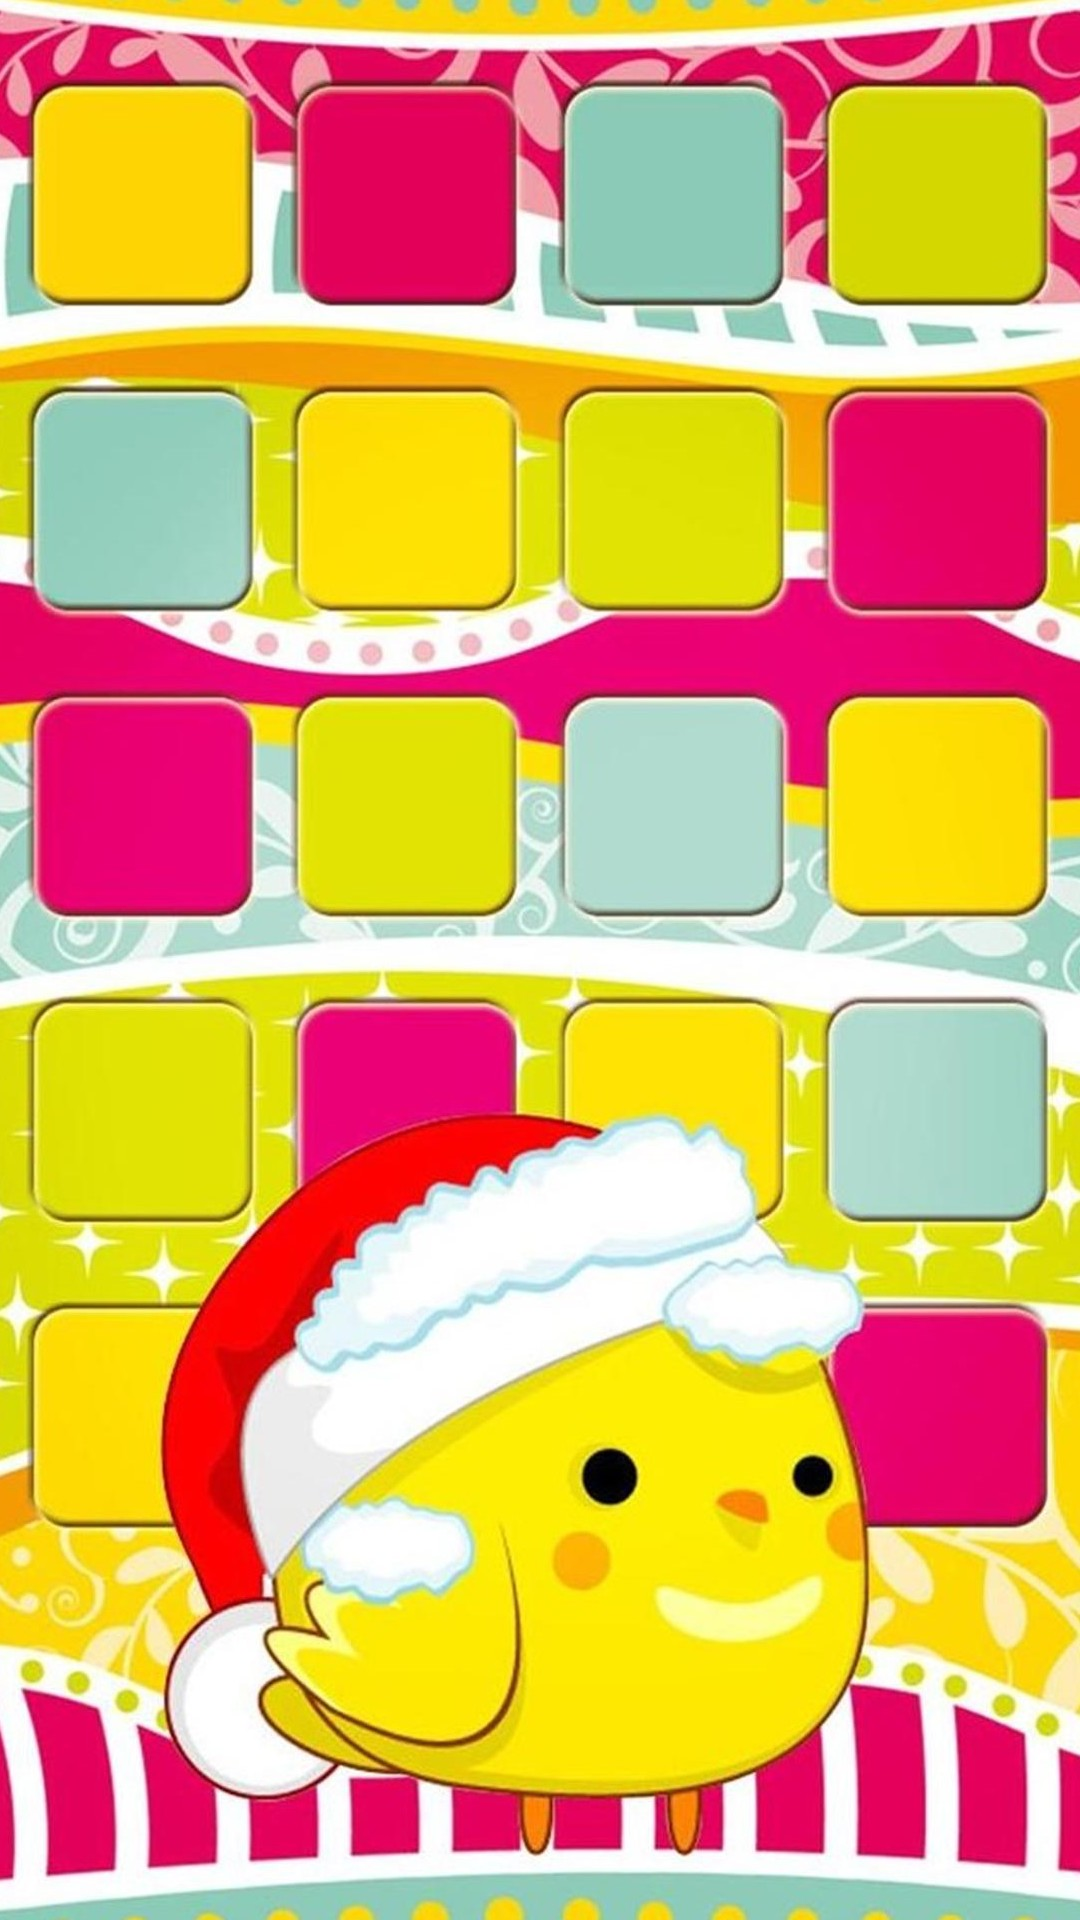 Cute Android Wallpapers HD 143jpg 10801920 1080x1920